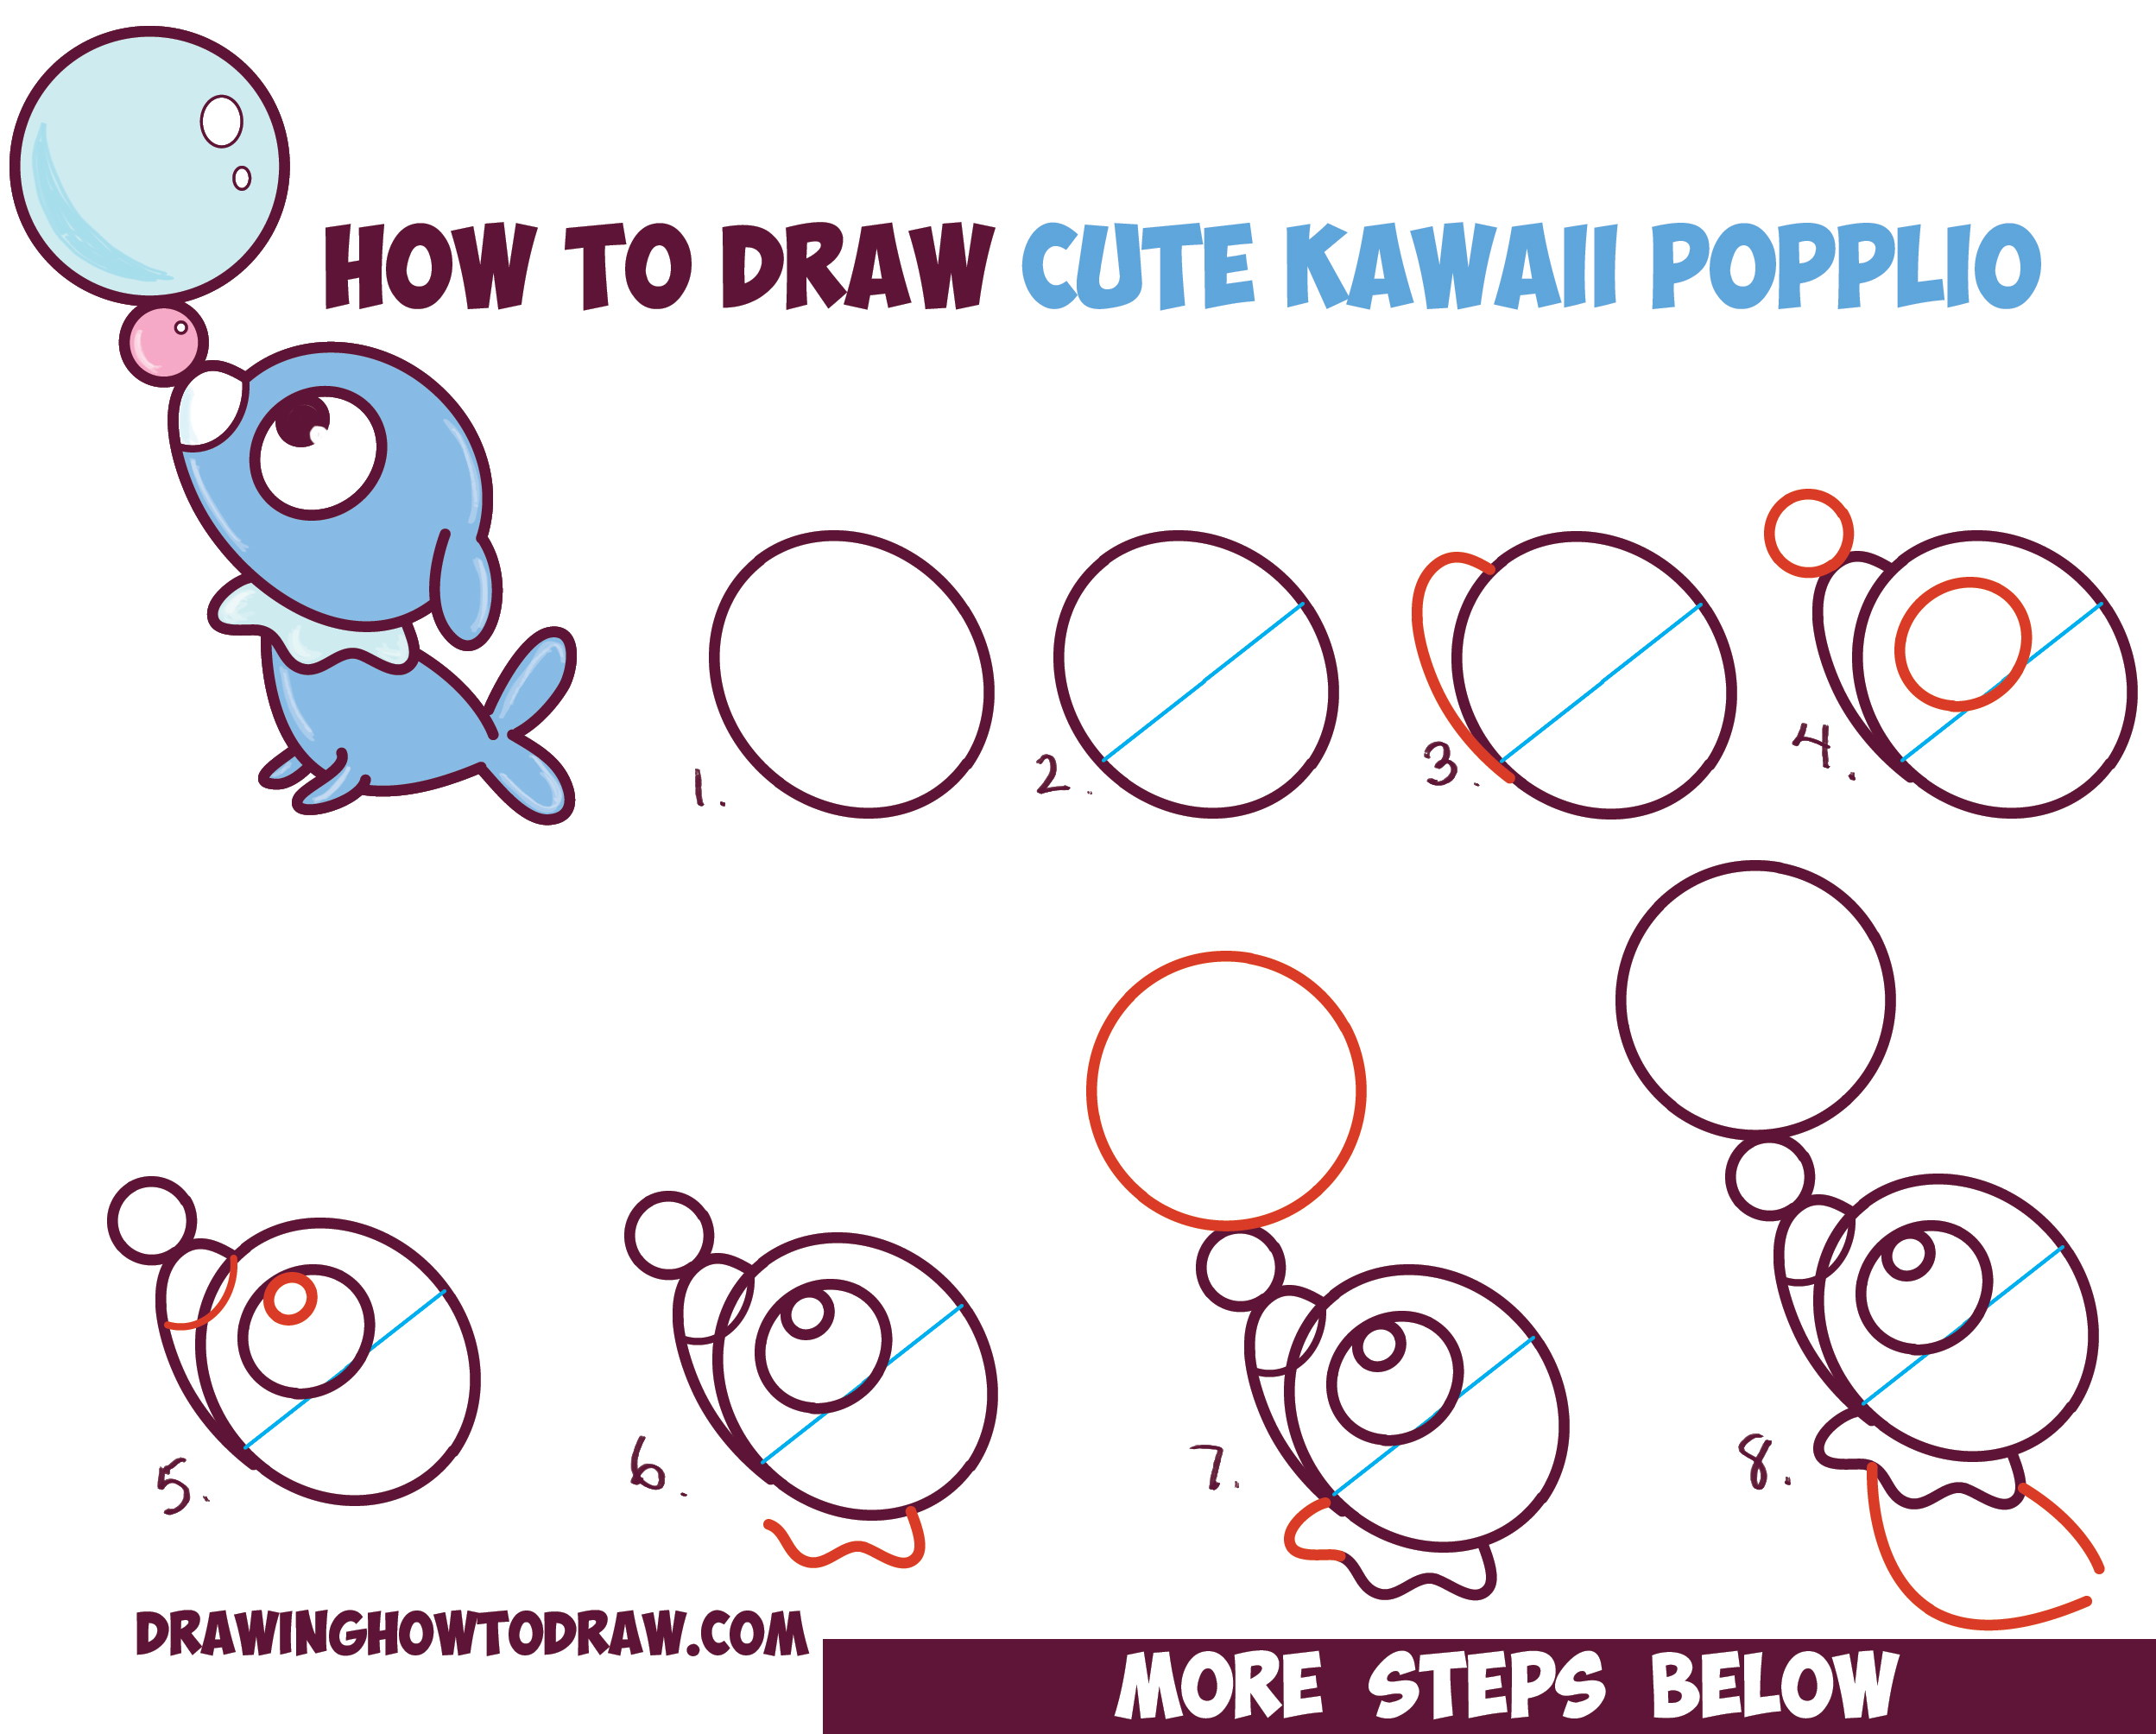 Kawaii pokemon mew drawings images pokemon images for How to draw things step by step